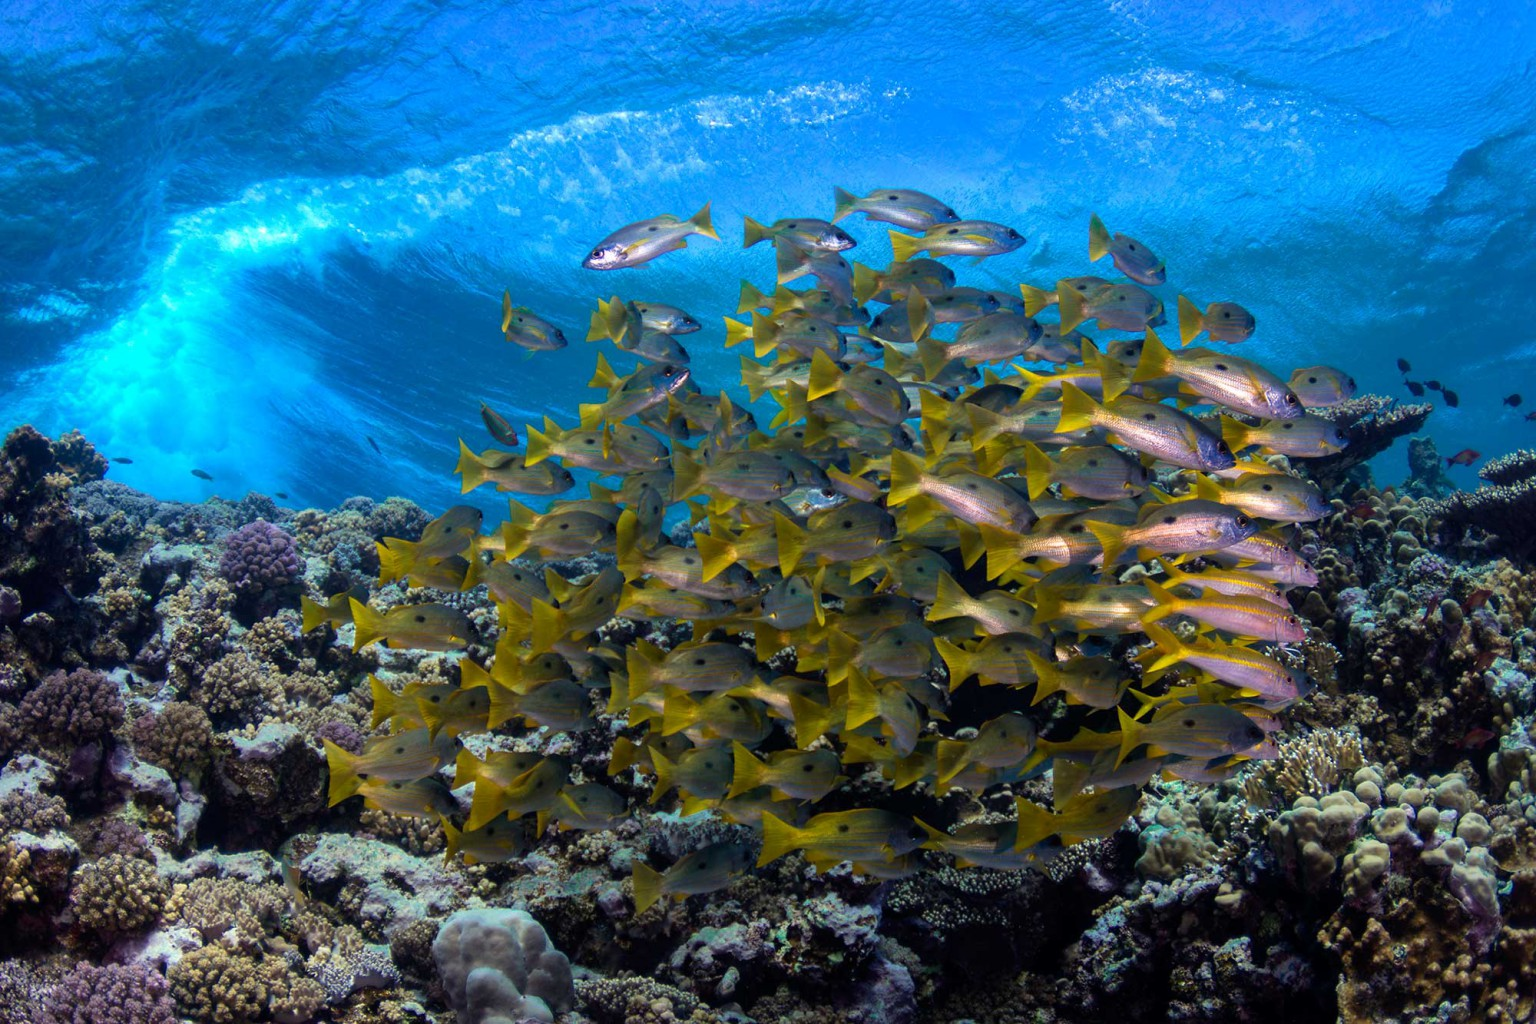 Marsa Shagra Reef, southern Red Sea, Egypt